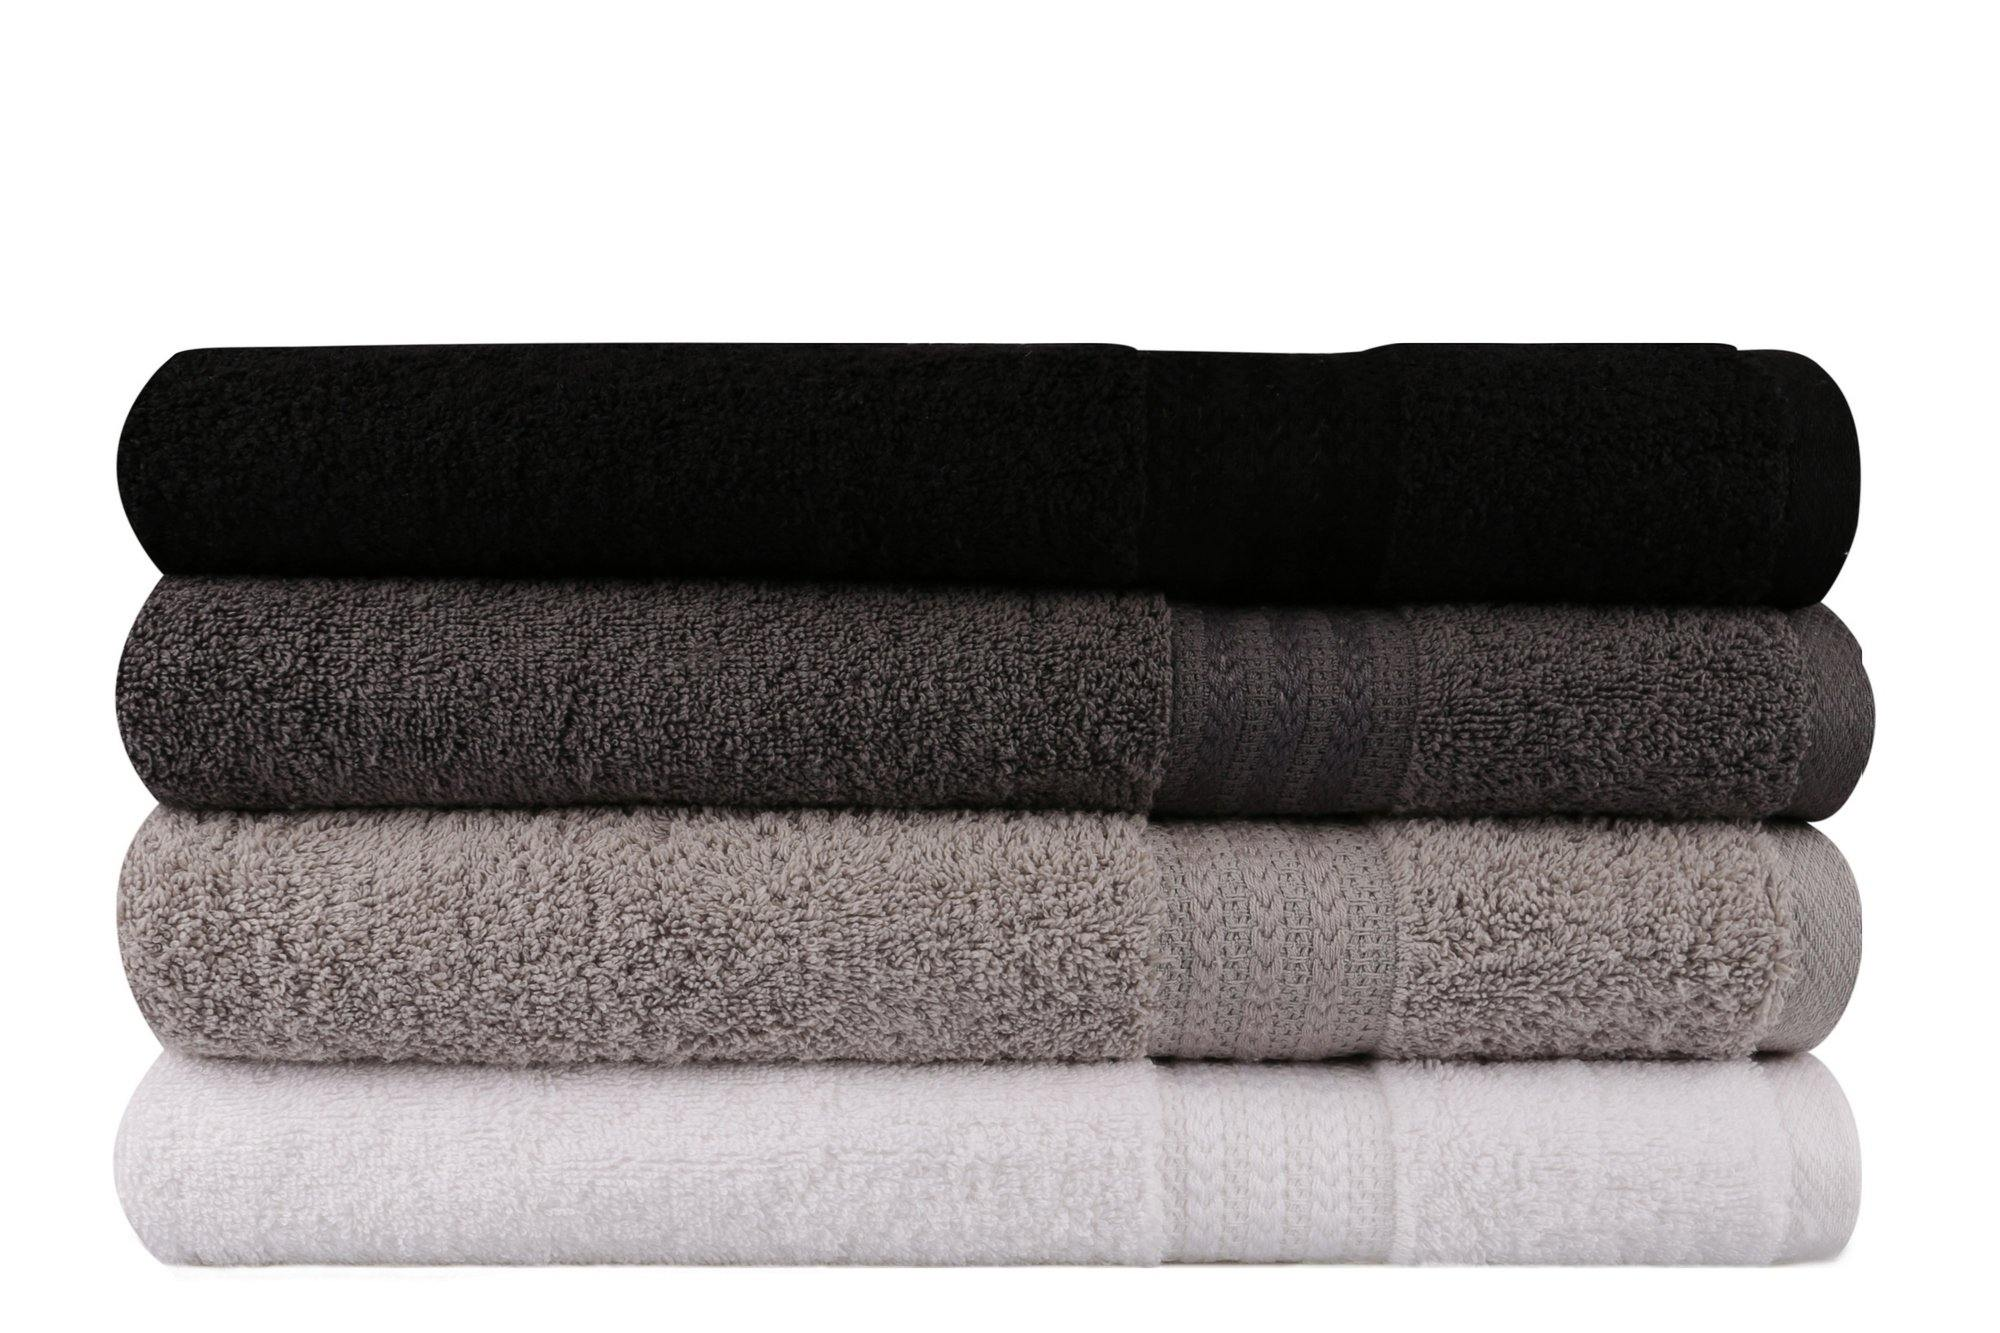 Highly Absorbent Premium Quality 100% Turkish Cotton 4 Piece Bath Towel Set with Special Gift Box - Size 28'' x 55'' (70 x 140 cm) - Decorotika